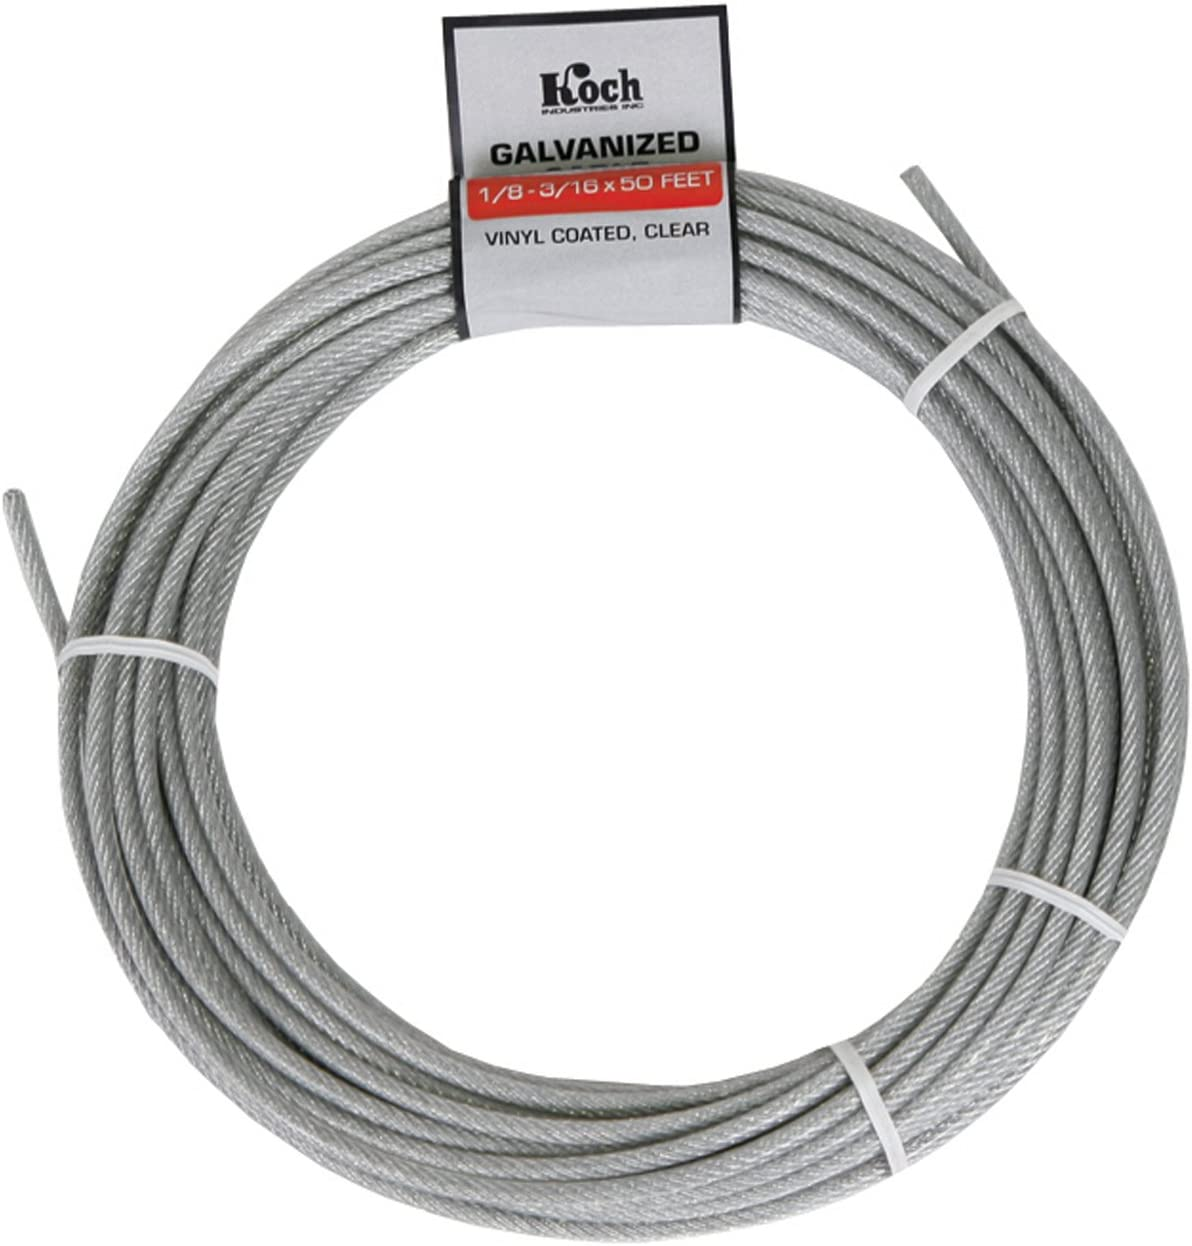 1500 Feet 1//8-3//16 Clear Vinyl Coated Galvanized Aircraft Cable Steel Wire Rope 7x7